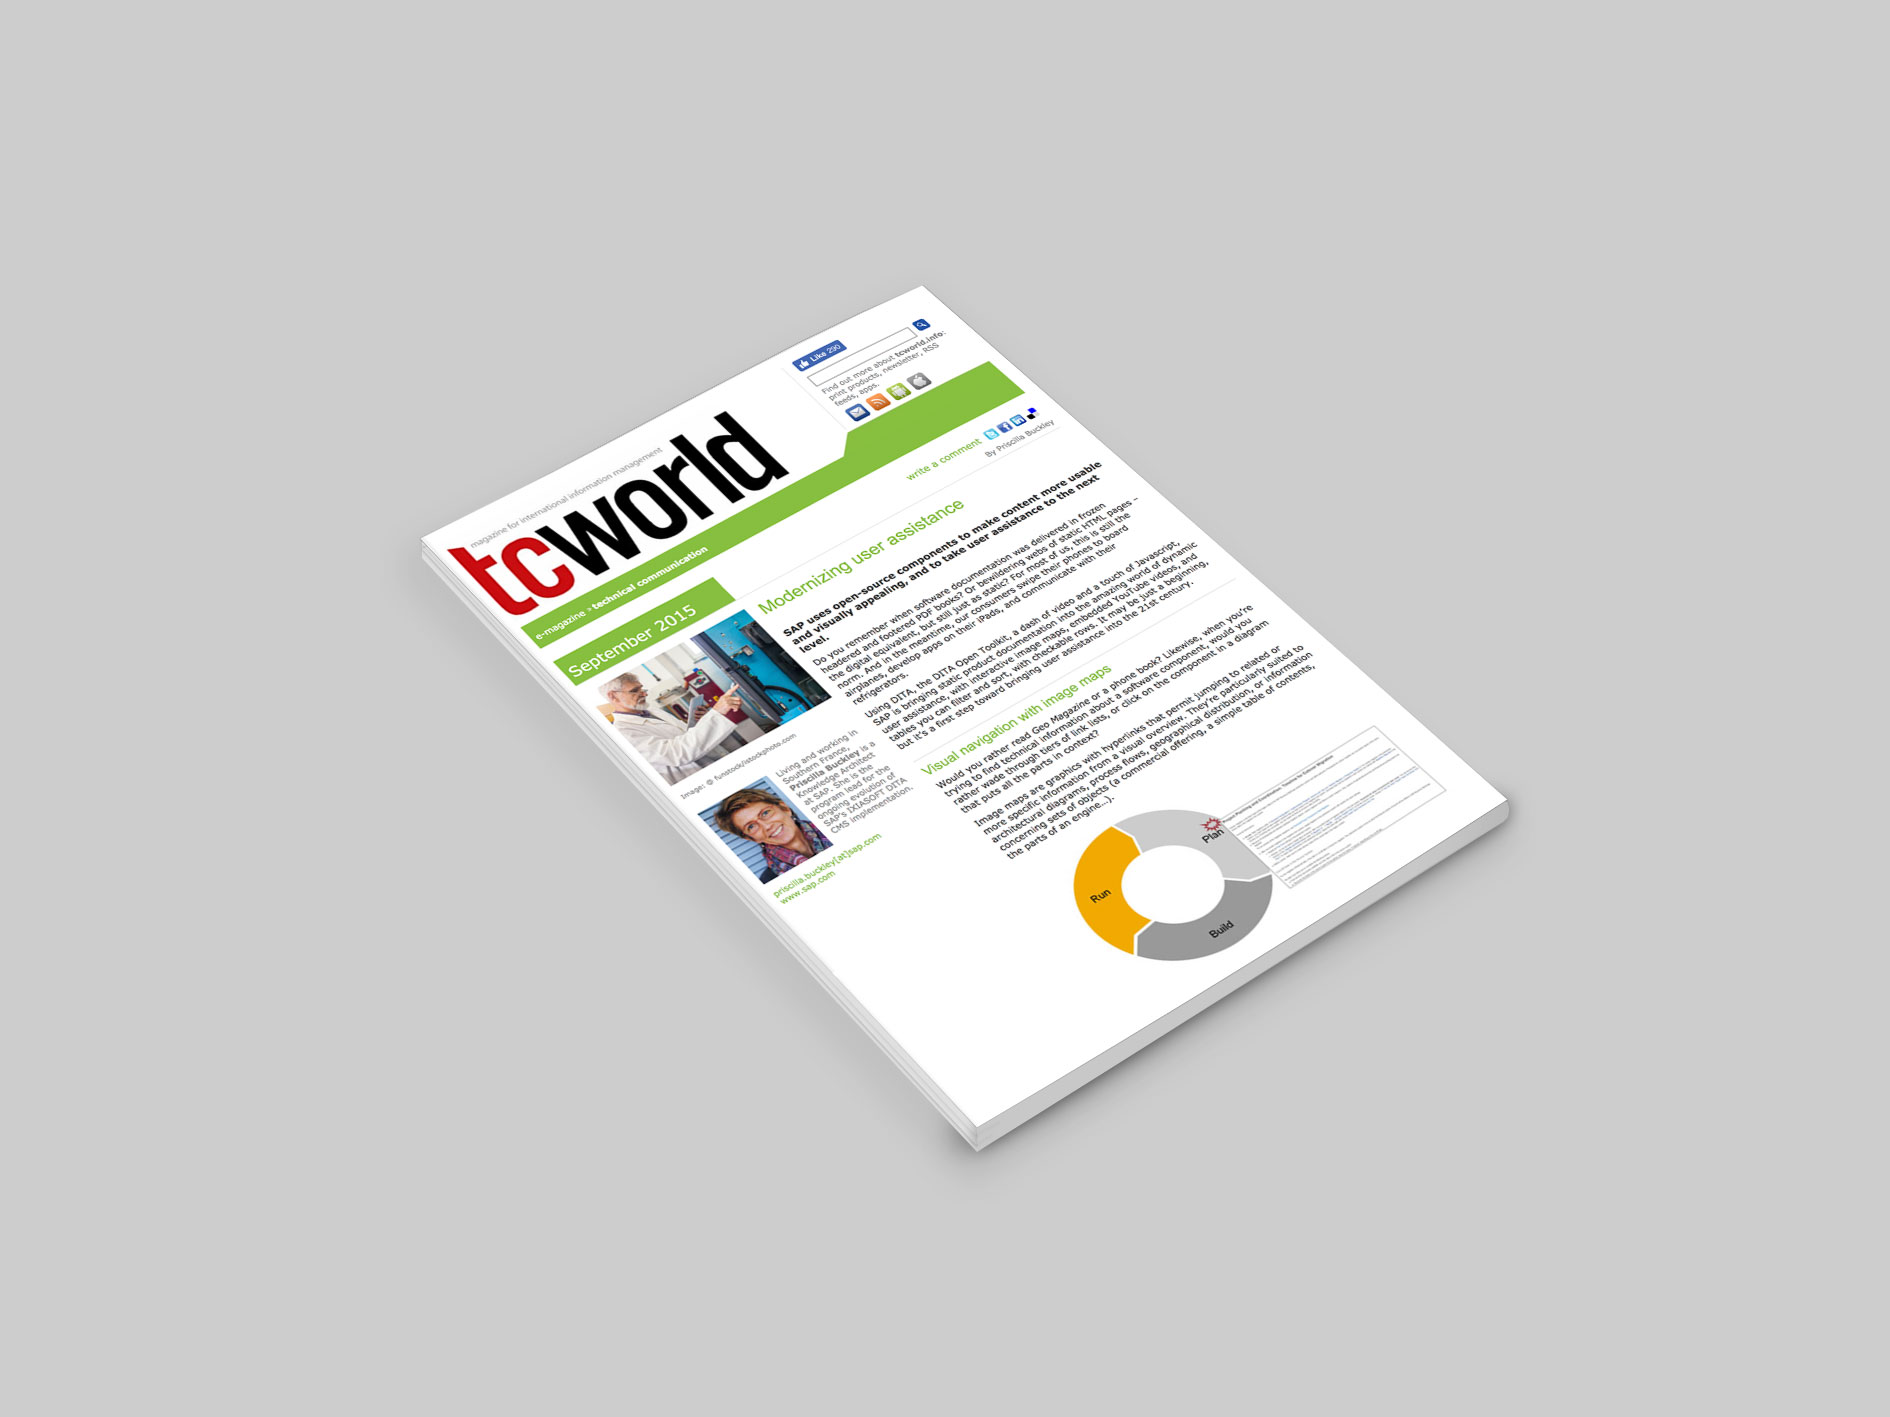 Screenshot of TCWorld PDF article on Modernizing User Assistance.